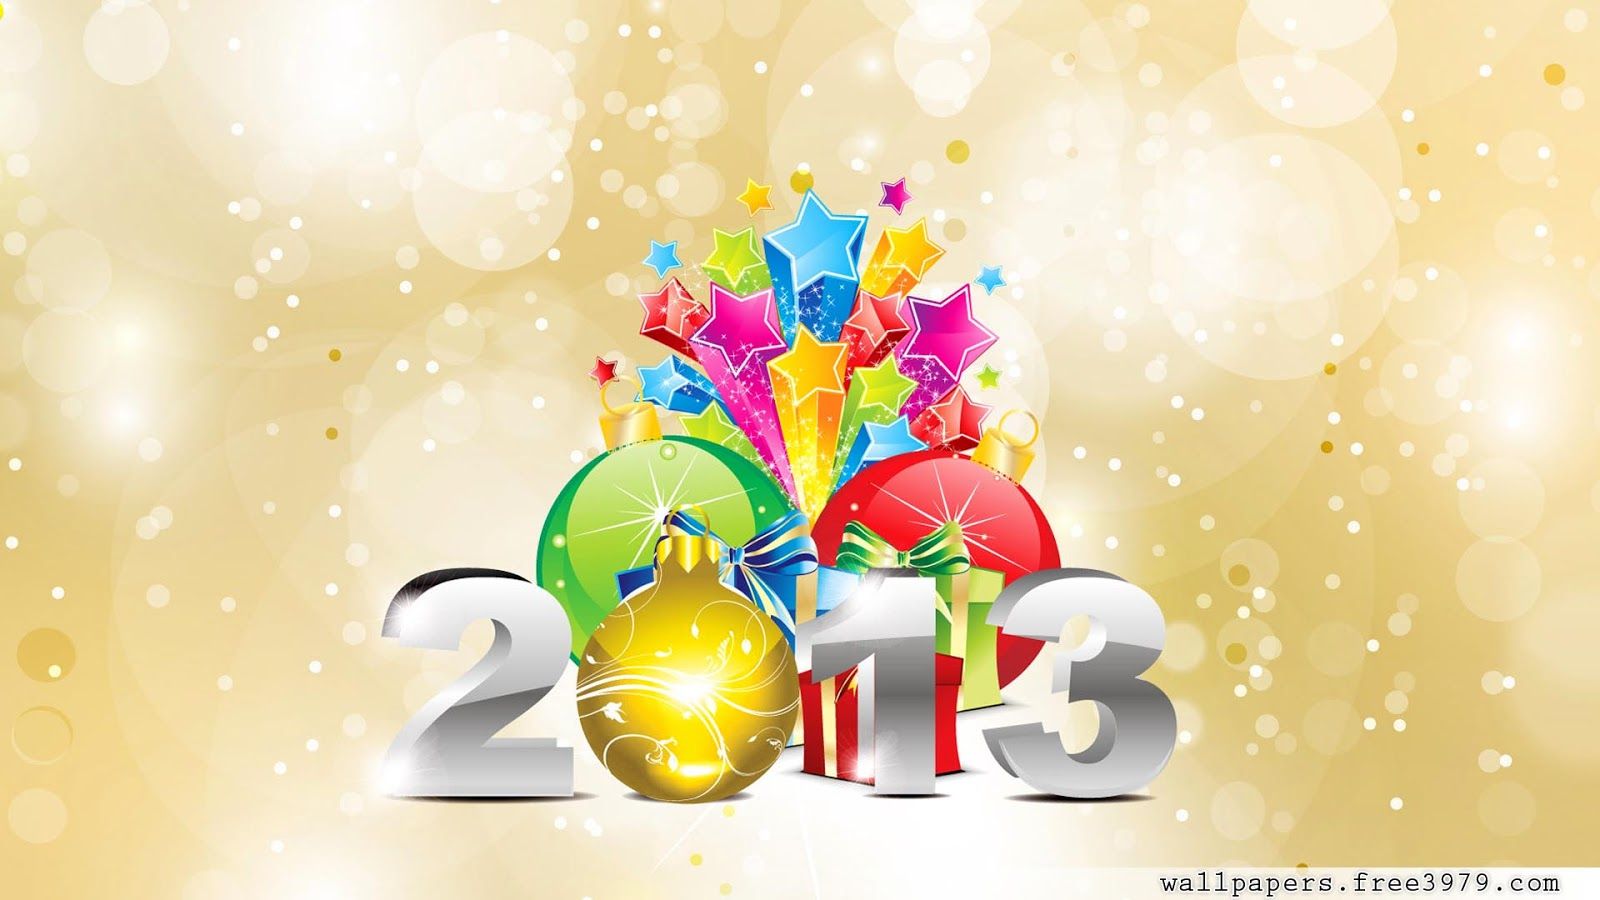 Free 2013 New Year 3D wallpapers 2013 Photos